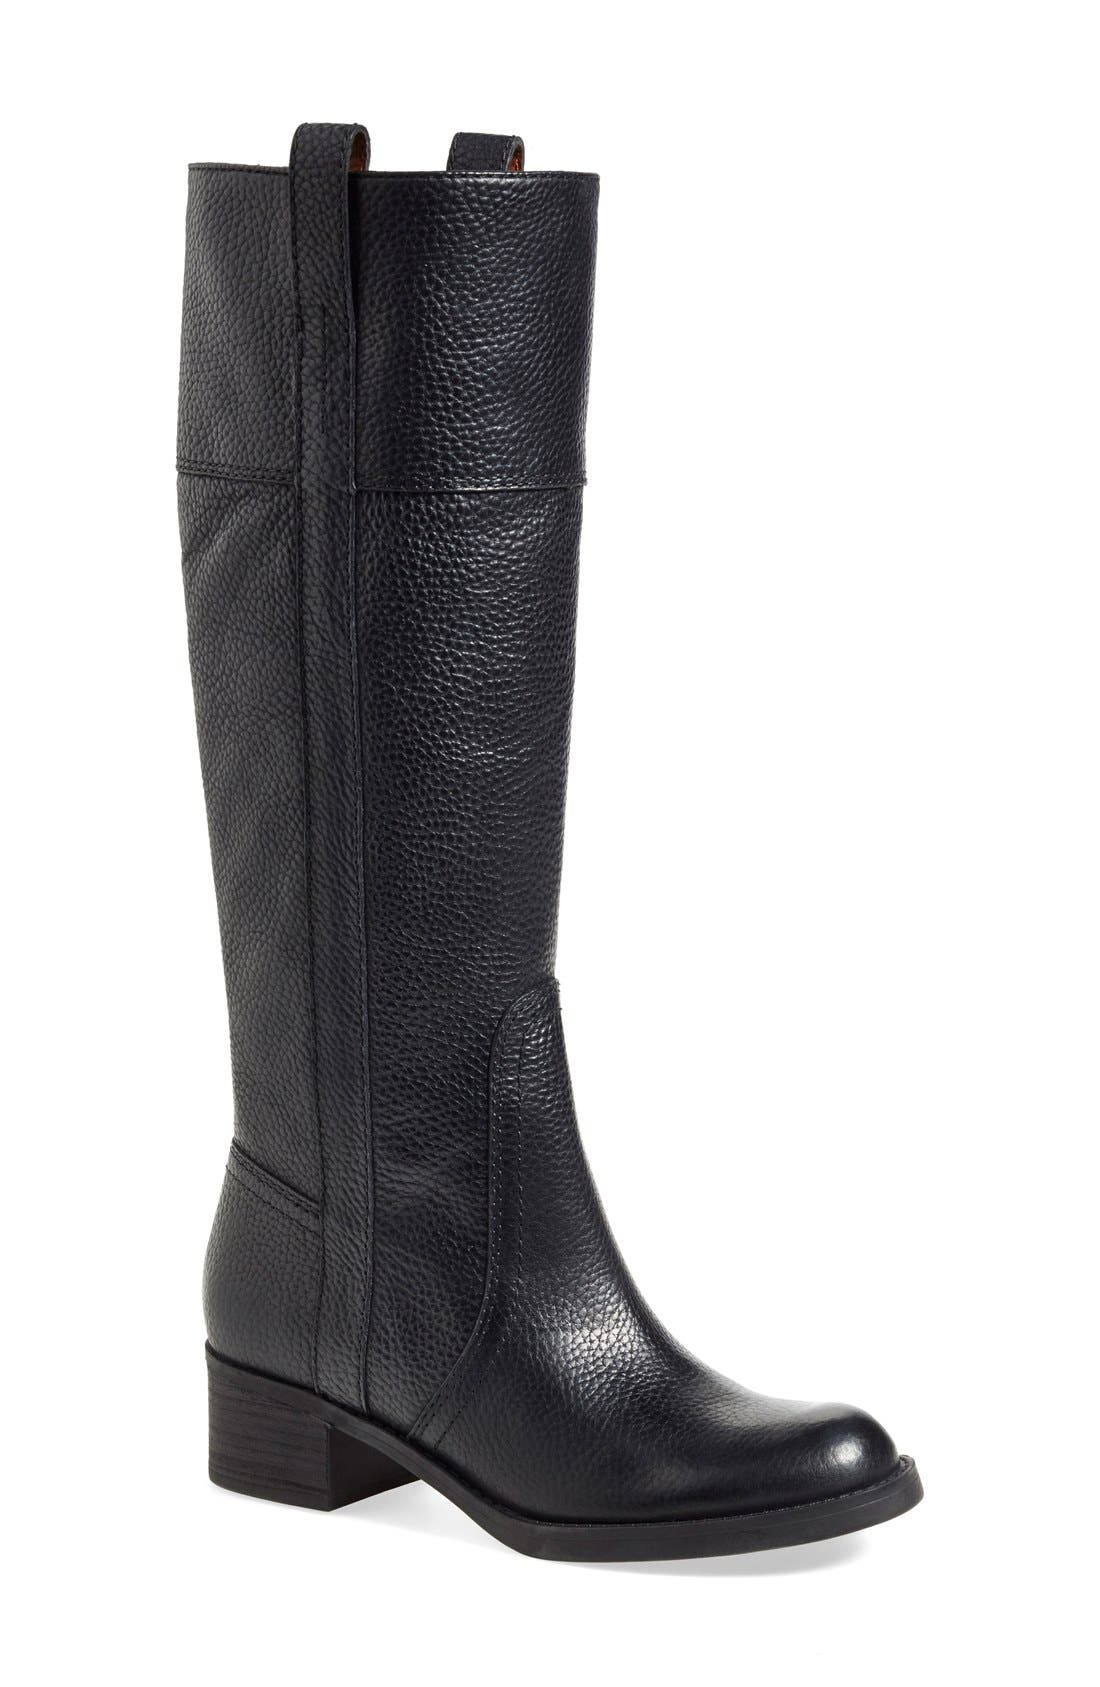 LUCKY BRAND, 'Heloisse' Boot, Main thumbnail 1, color, 002